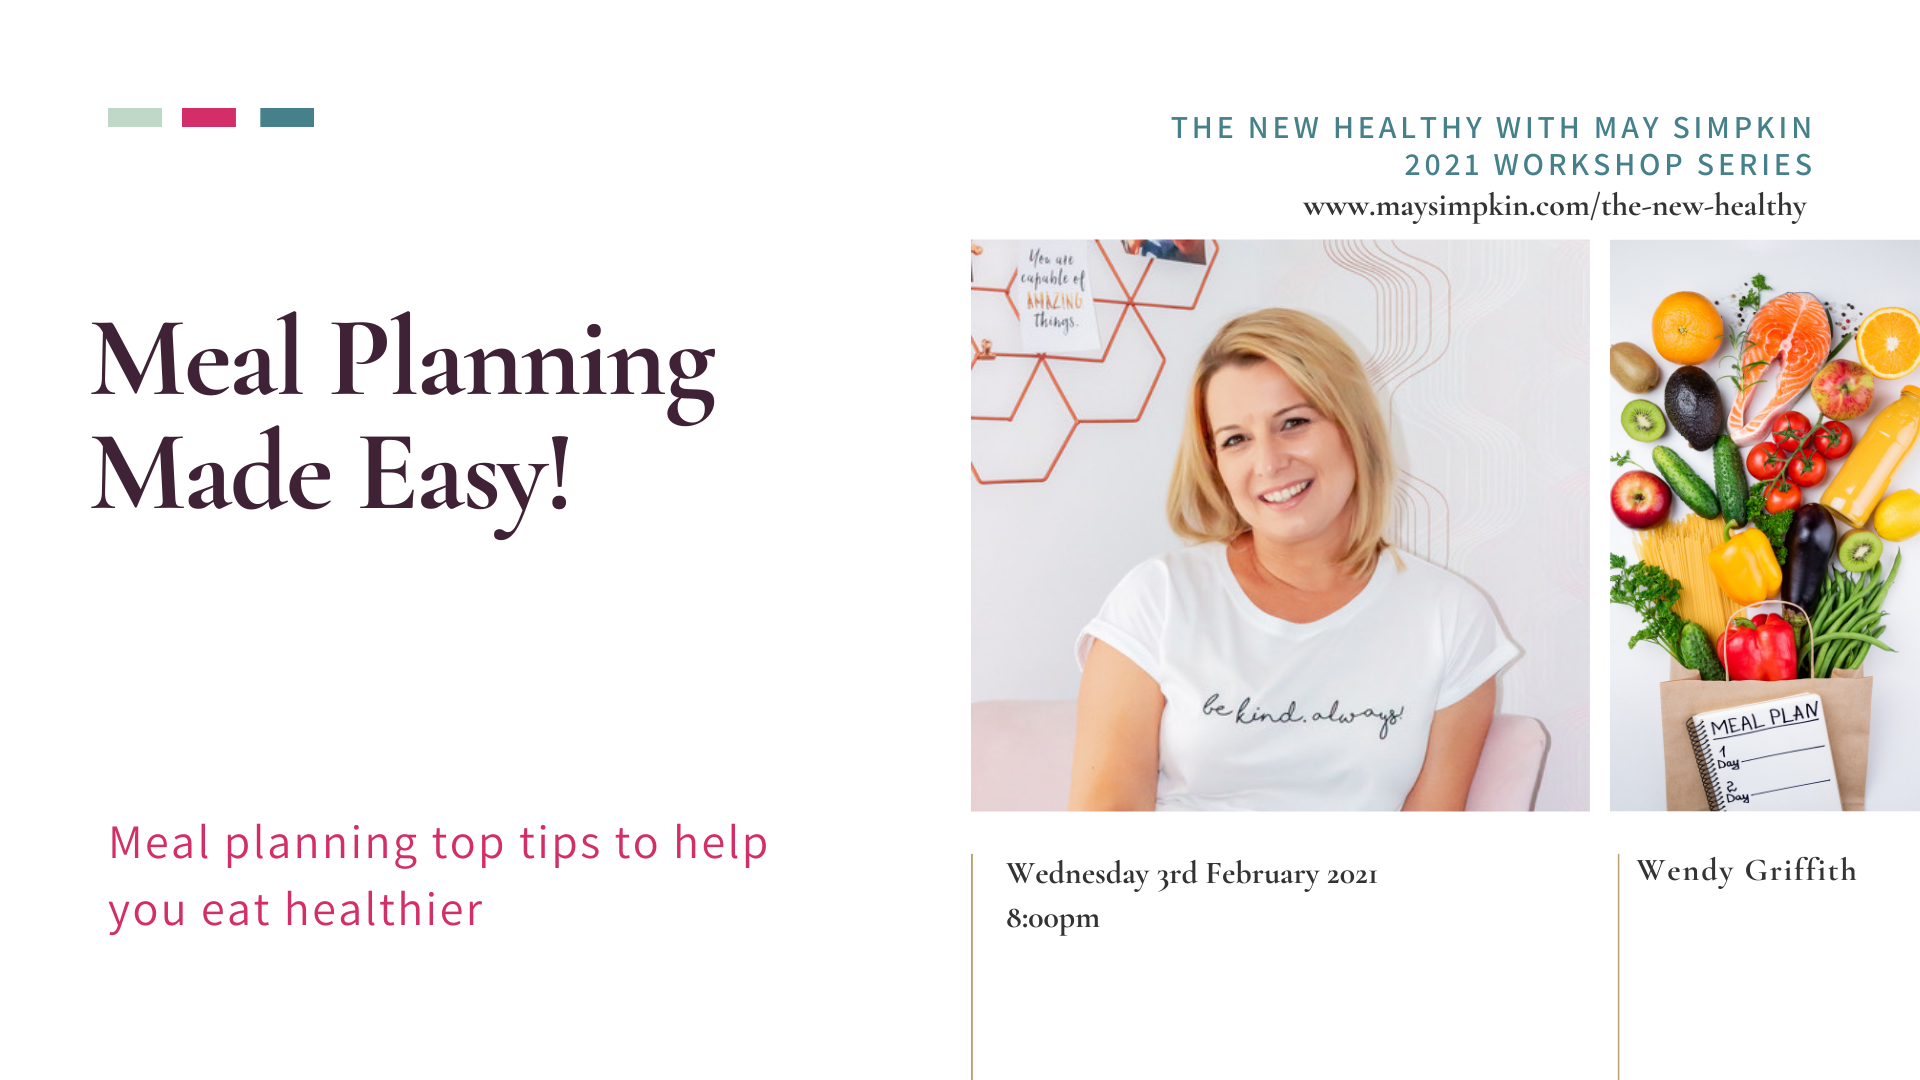 Meal Planning Made Easy; The New Healthy Workshop Series with May Simpkin